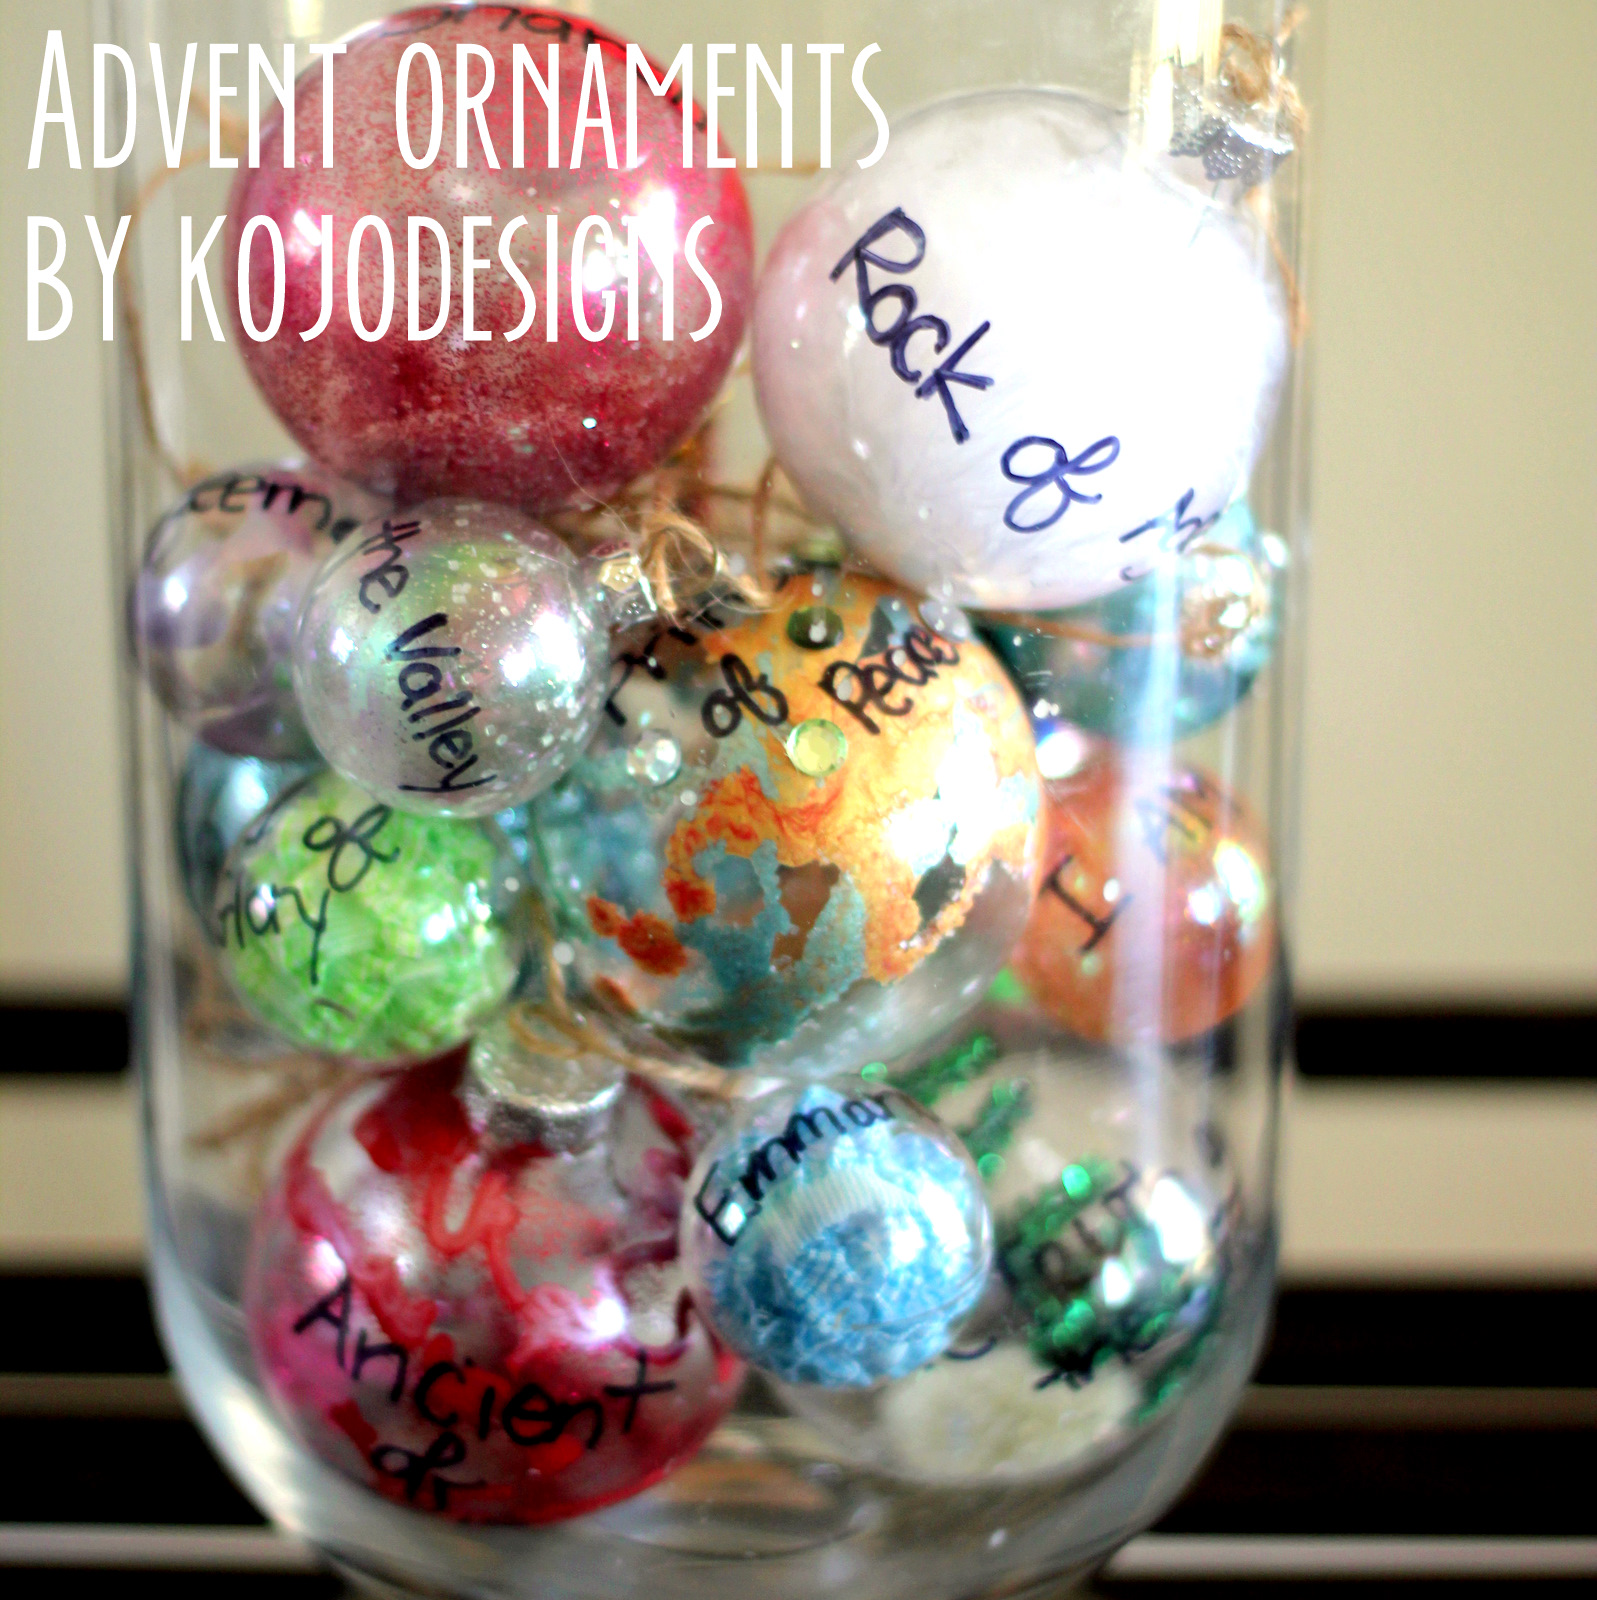 Ornaments with names on them - November 21 2011